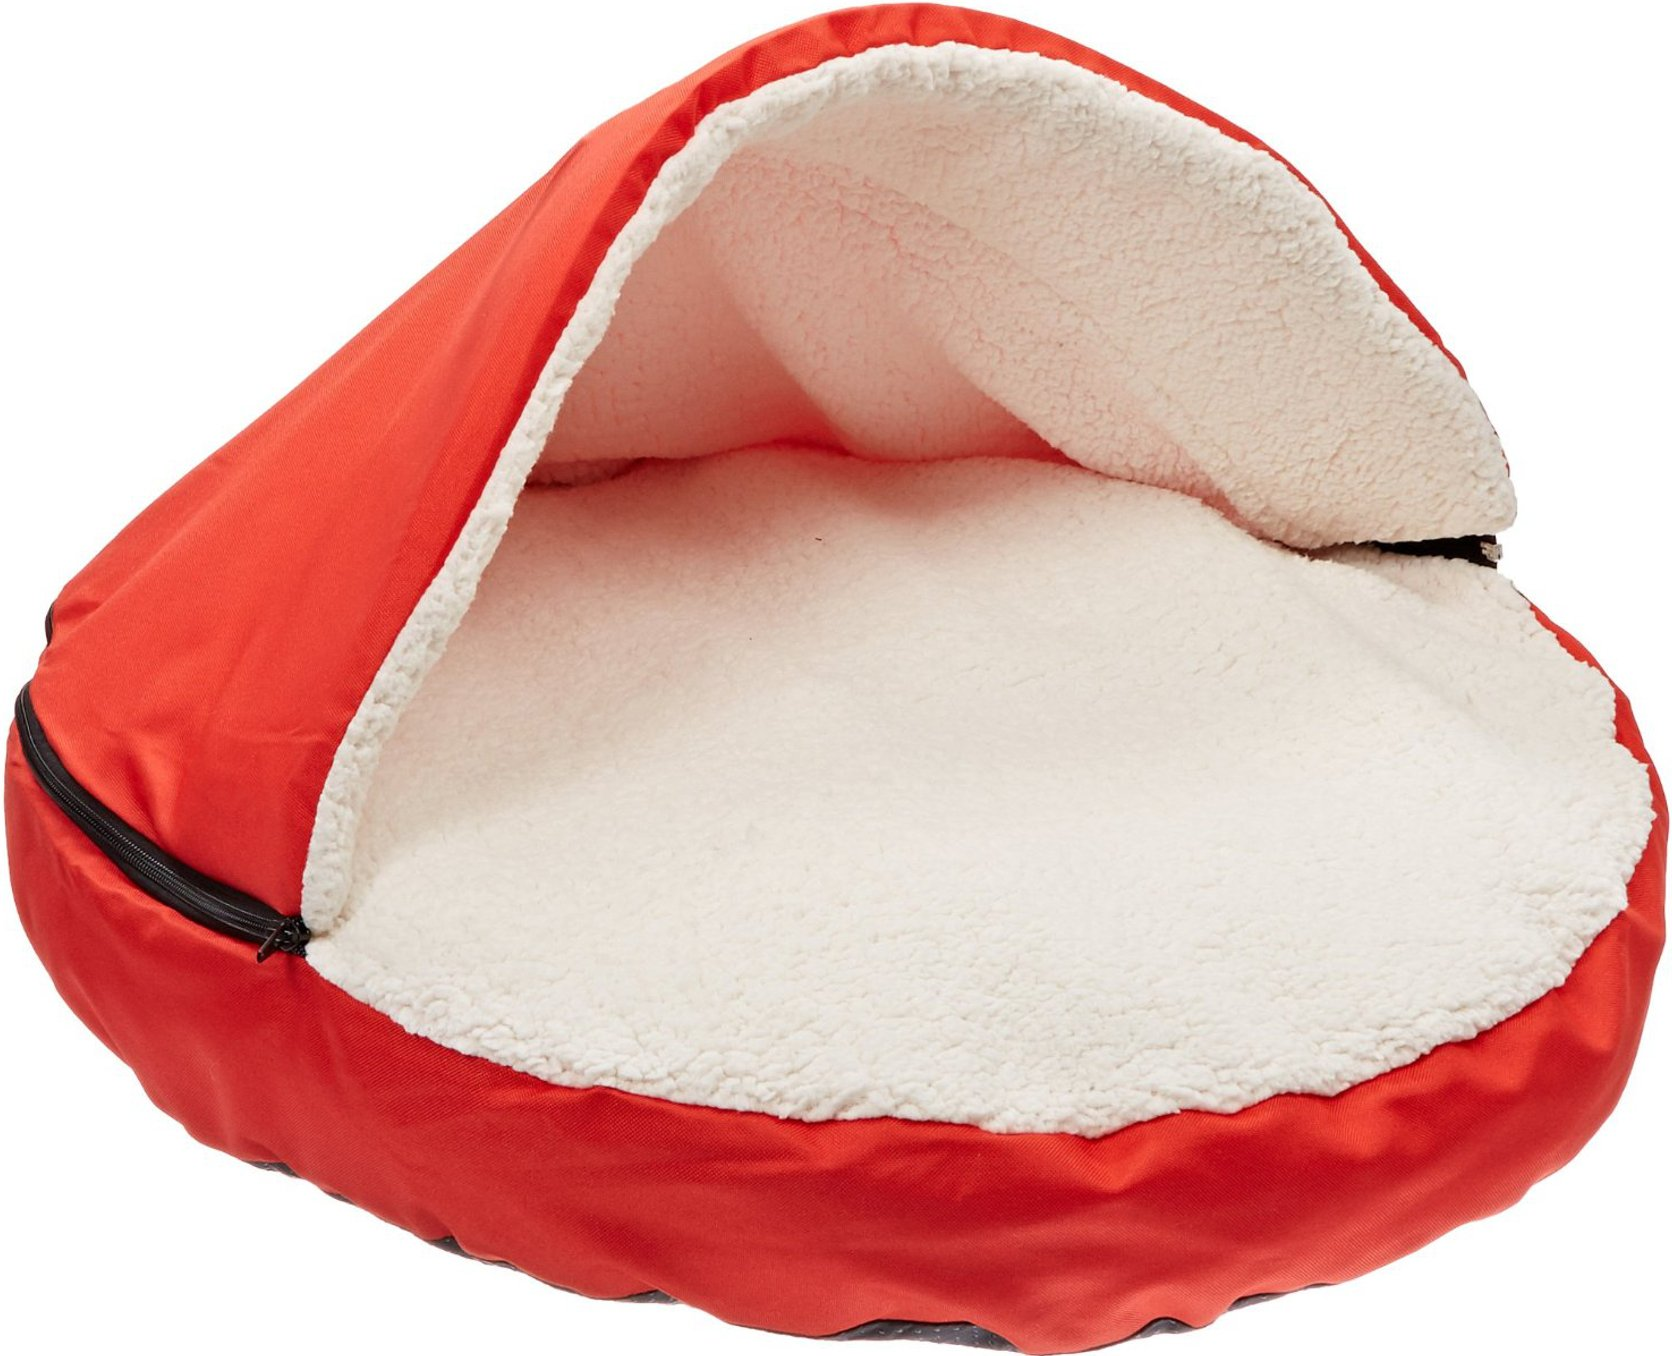 Sofantex Sofantex Plush Pet Cave Bed for Cats and Small to Medium Size Dogs, Red, 30 Inch by Sofantex